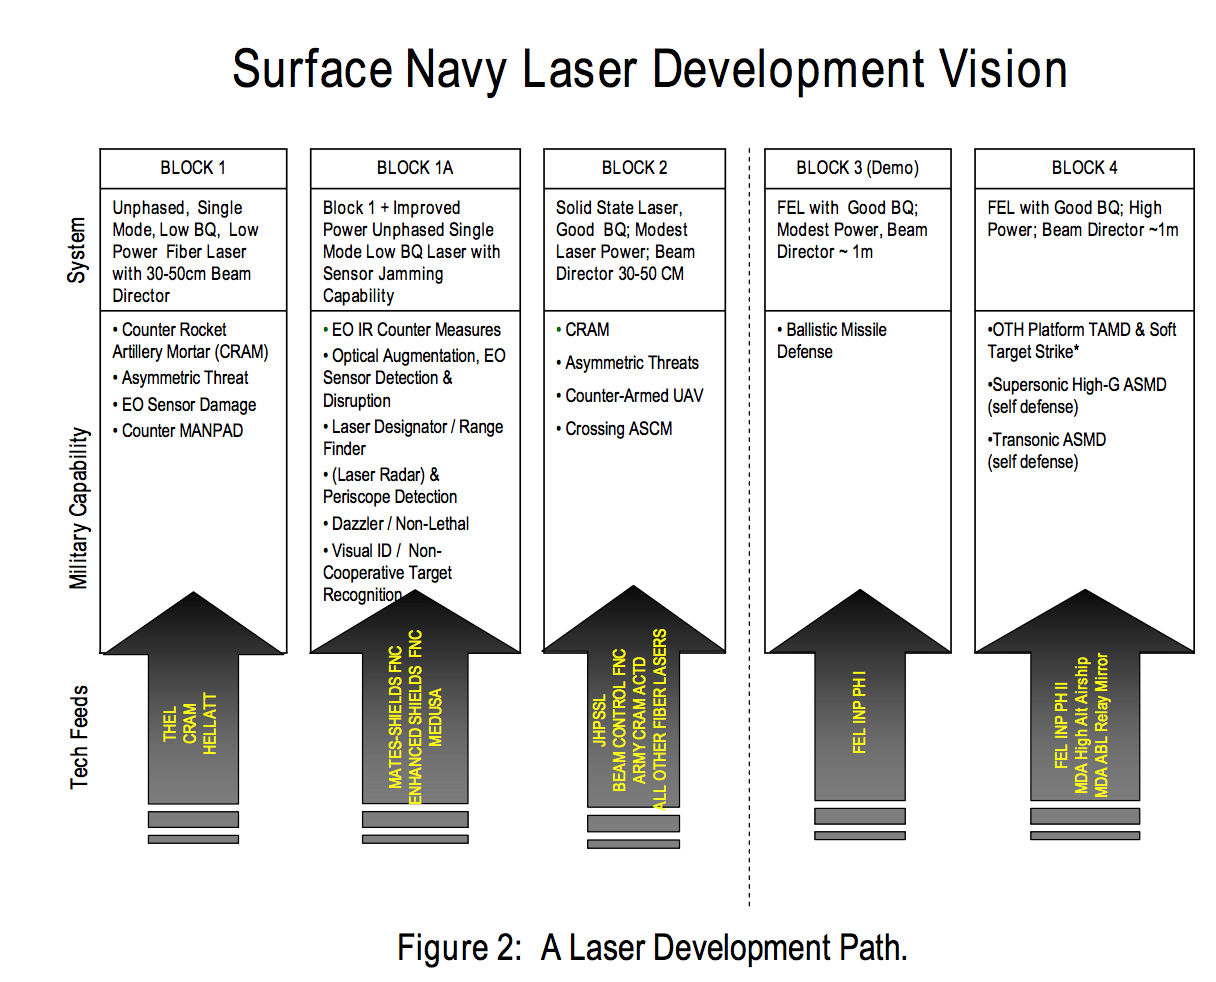 US Navy plans for scaling Free electron lasers to megawatt weapon